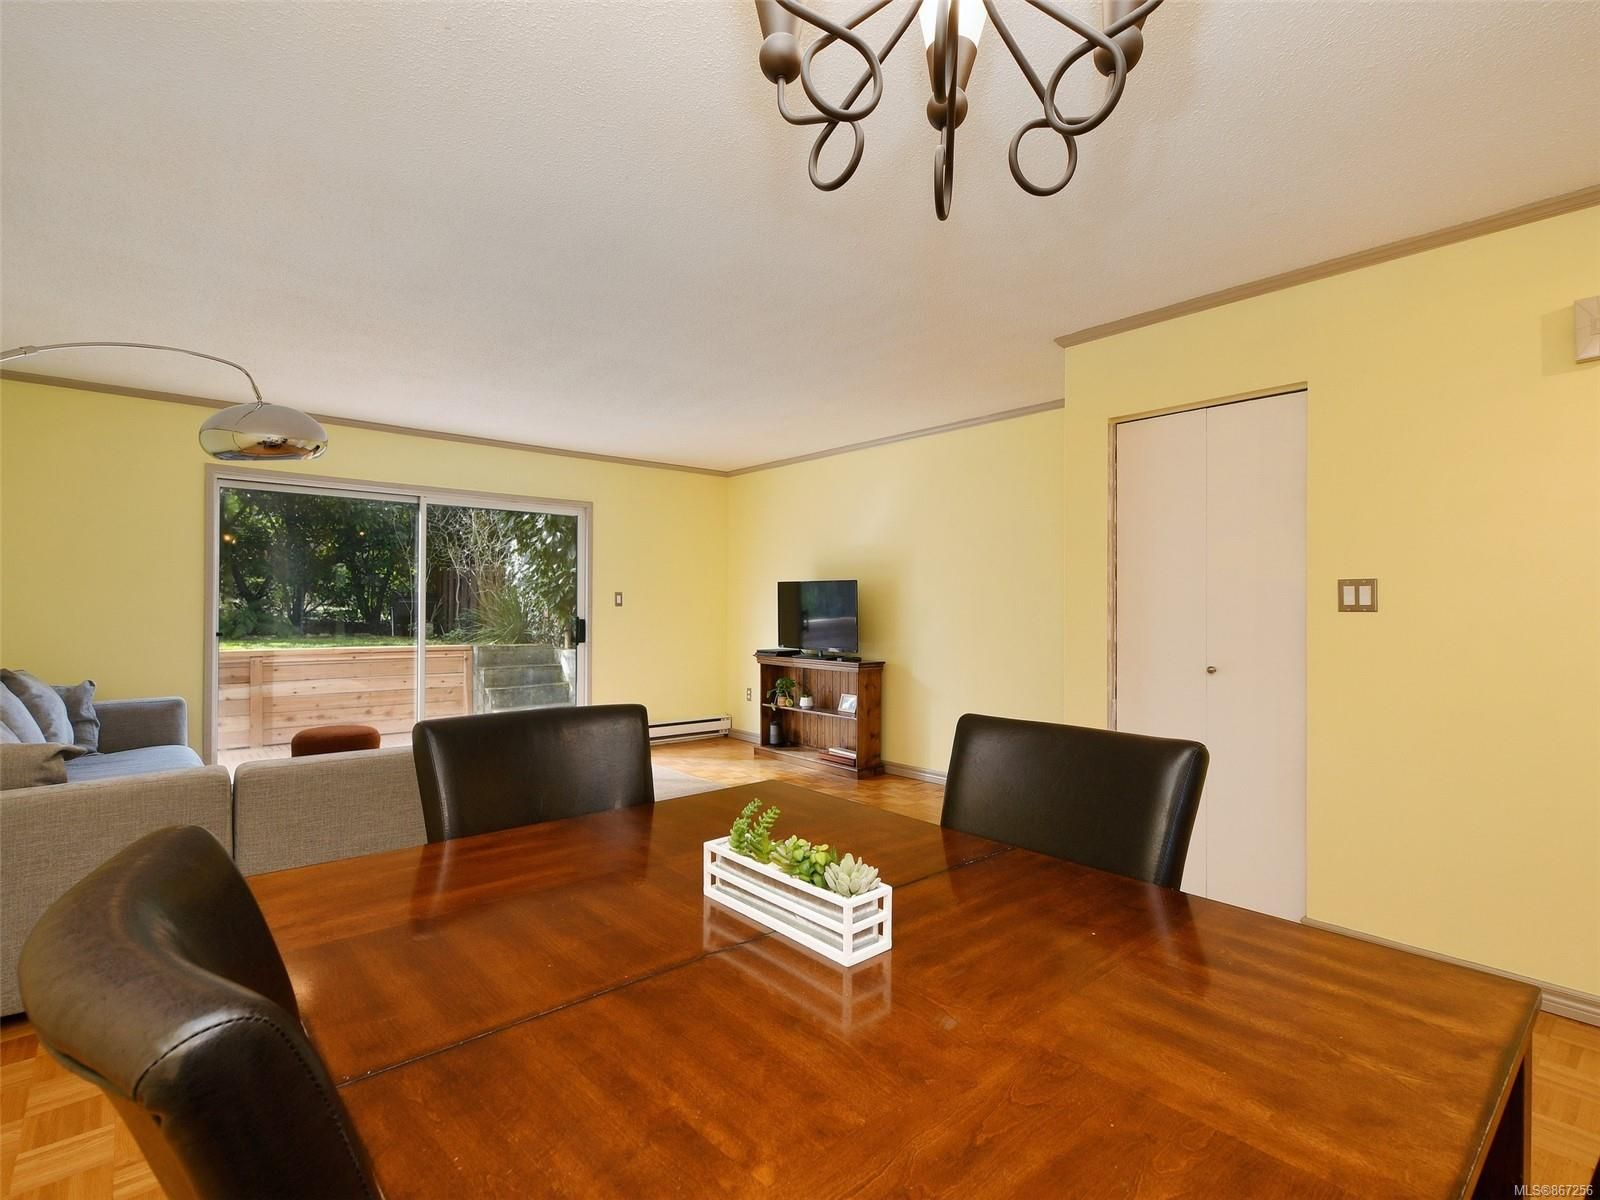 Photo 6: Photos: 5 869 Swan St in : SE Swan Lake Row/Townhouse for sale (Saanich East)  : MLS®# 867256